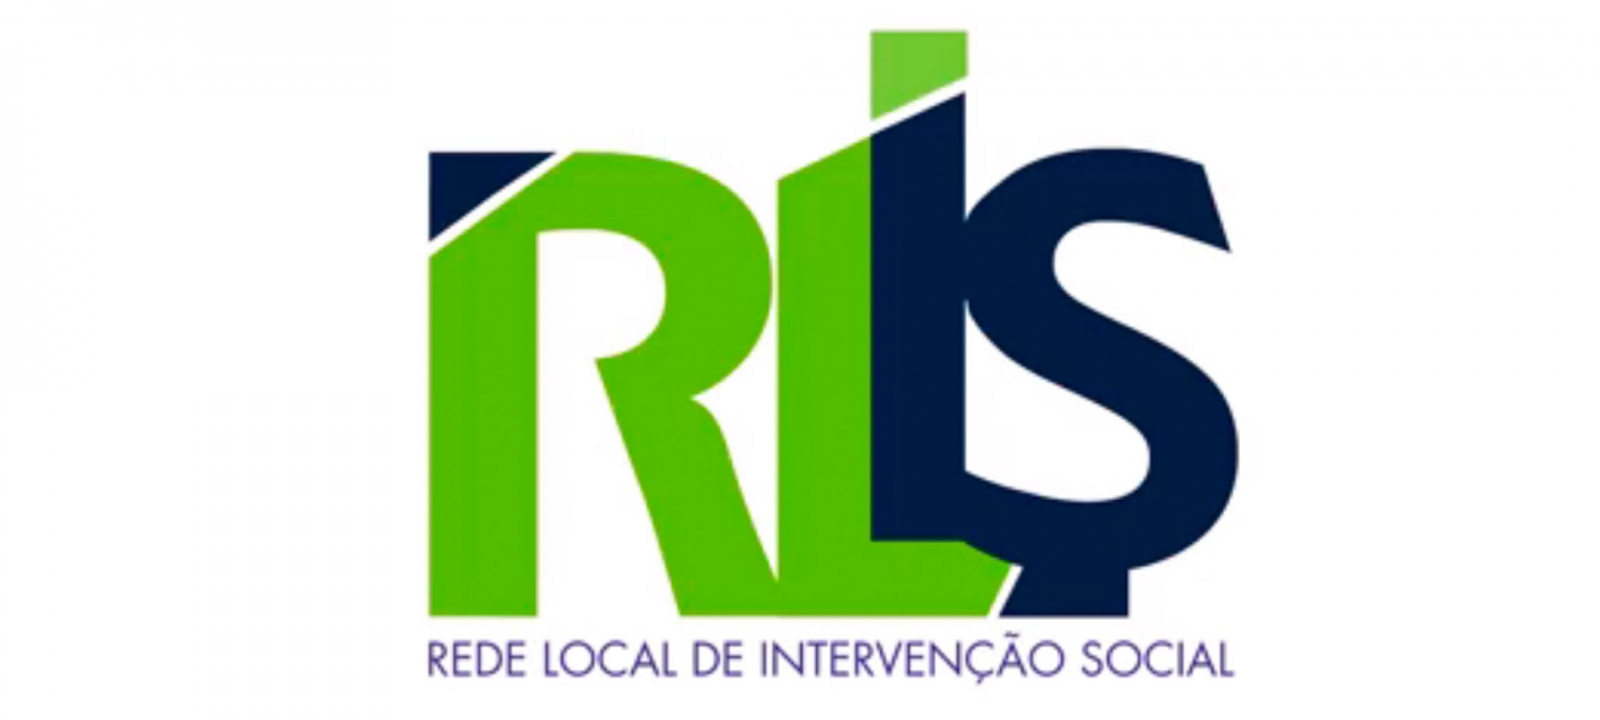 Rede Local de Intervenção Social